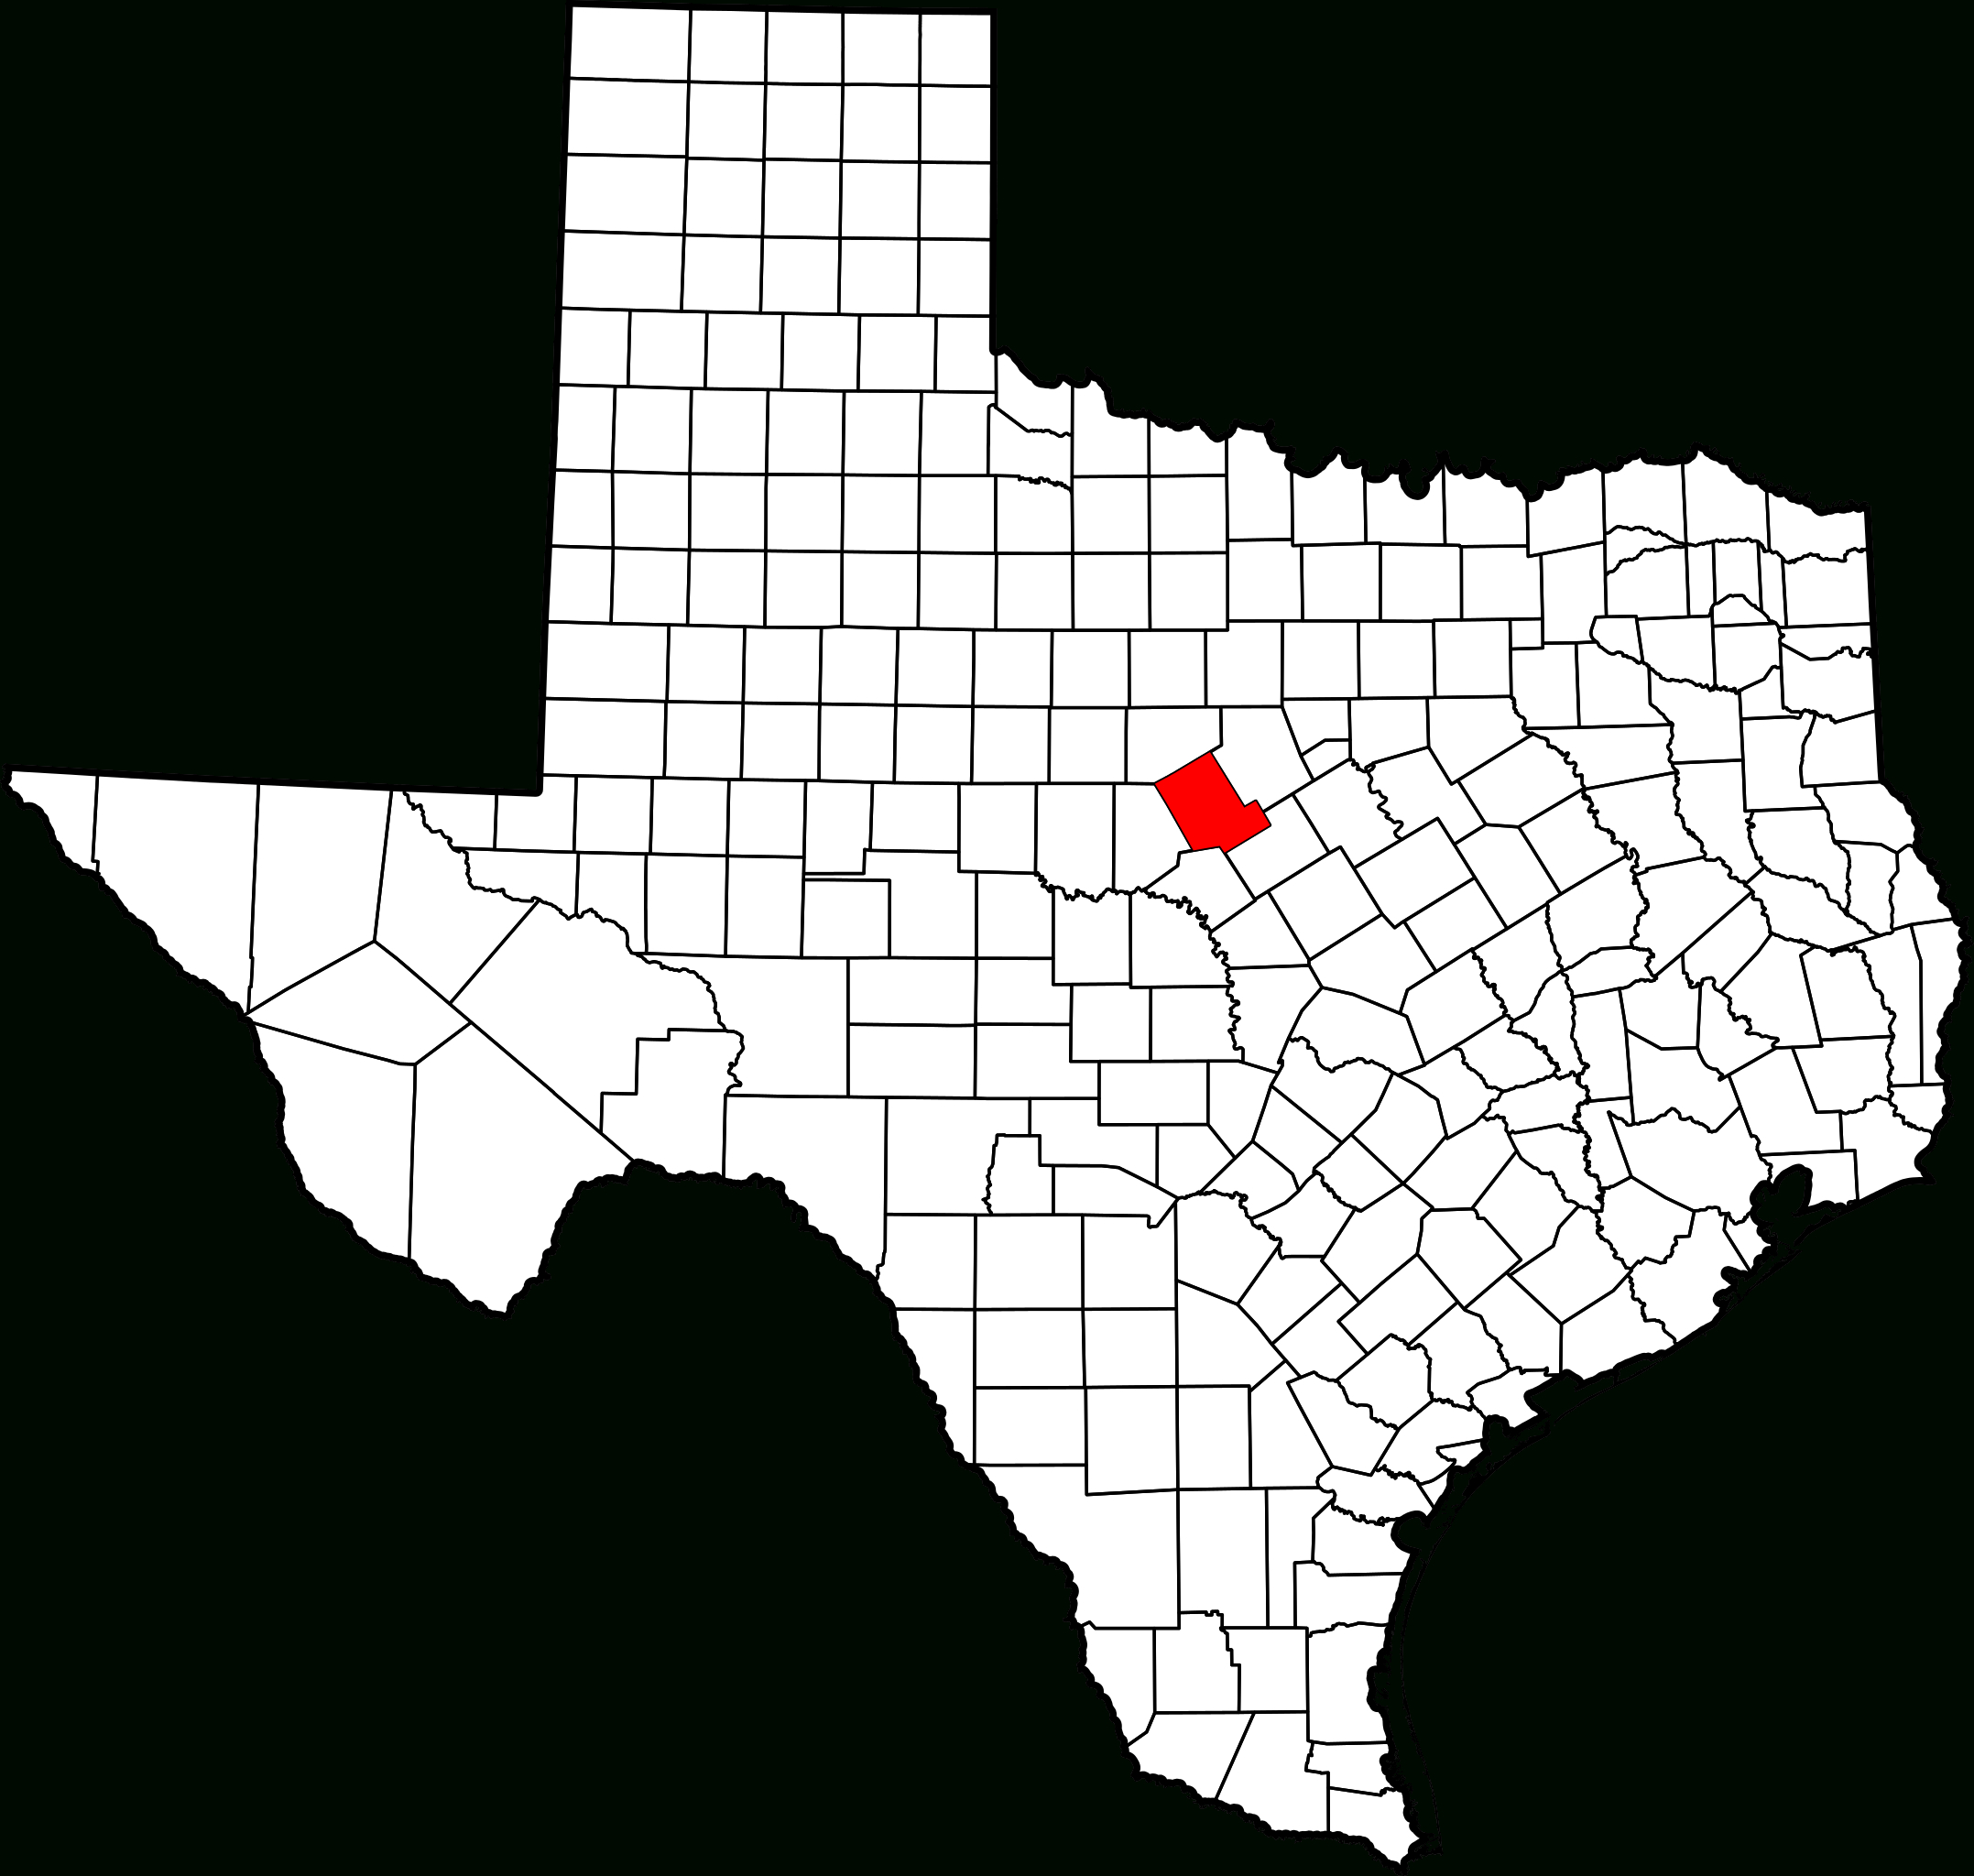 Fichier:map Of Texas Highlighting Comanche County.svg — Wikipédia - Comanche County Texas Map